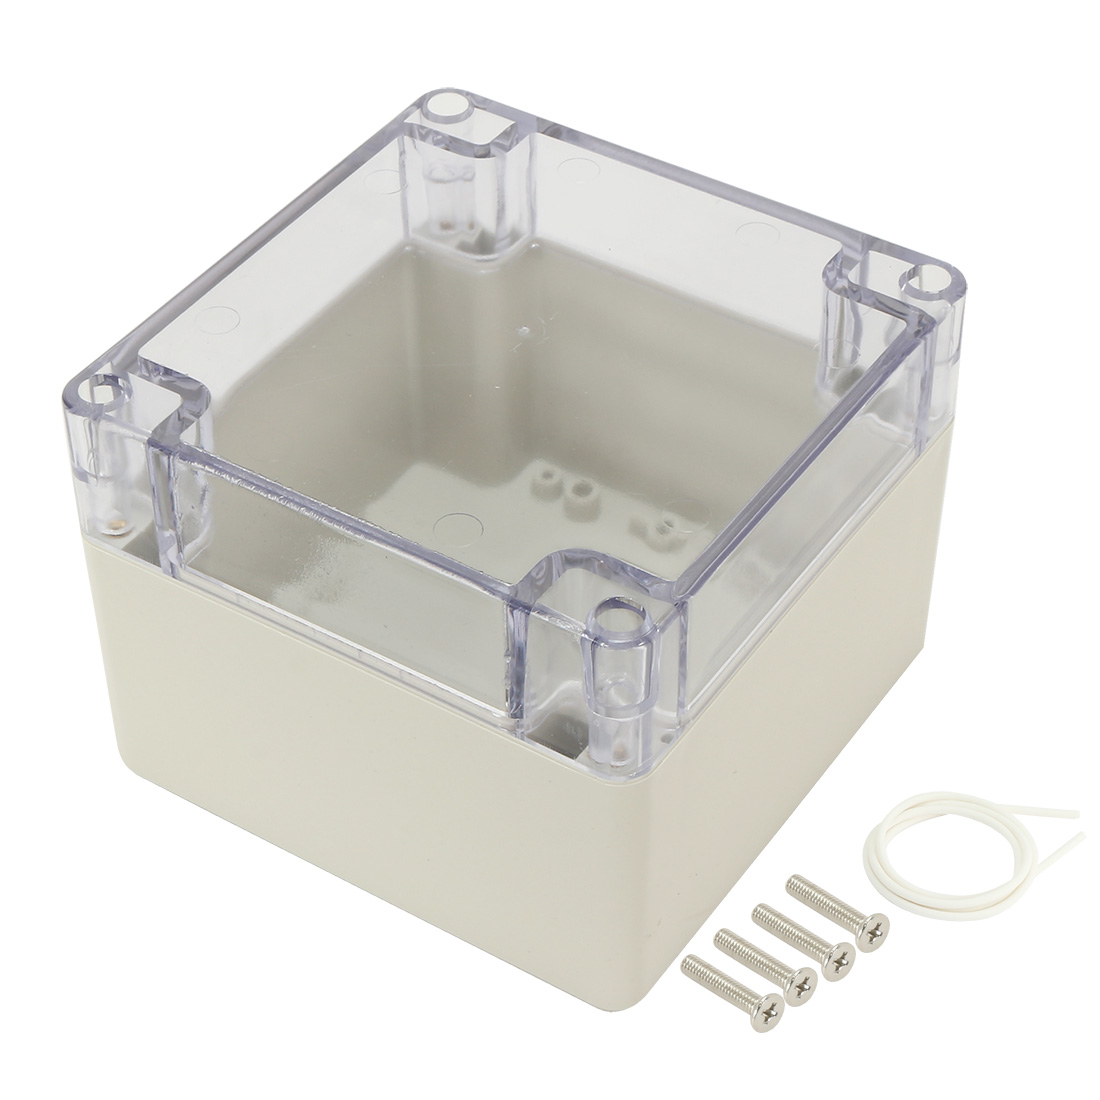 """4.7""""x4.7""""x3.5""""(120mmx120mmx90mm) ABS Junction Box Universal Project Enclosure w PC Transparent Cover"""